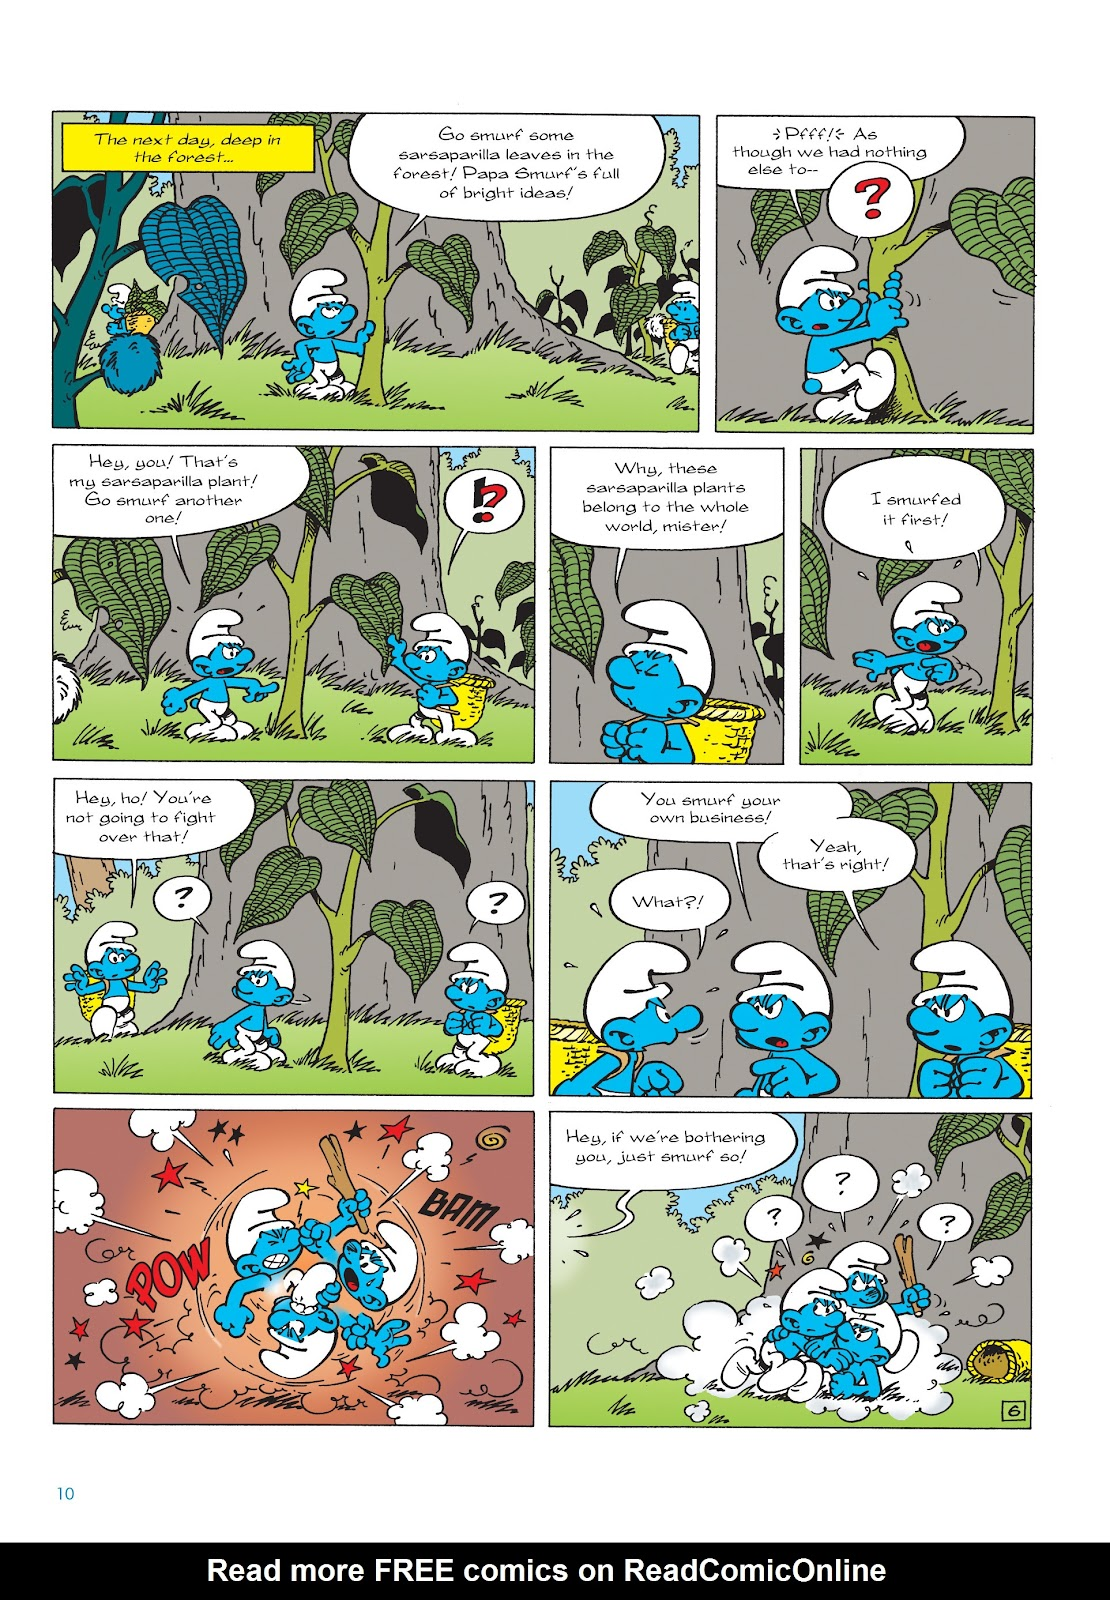 Read online The Smurfs comic -  Issue #22 - 11